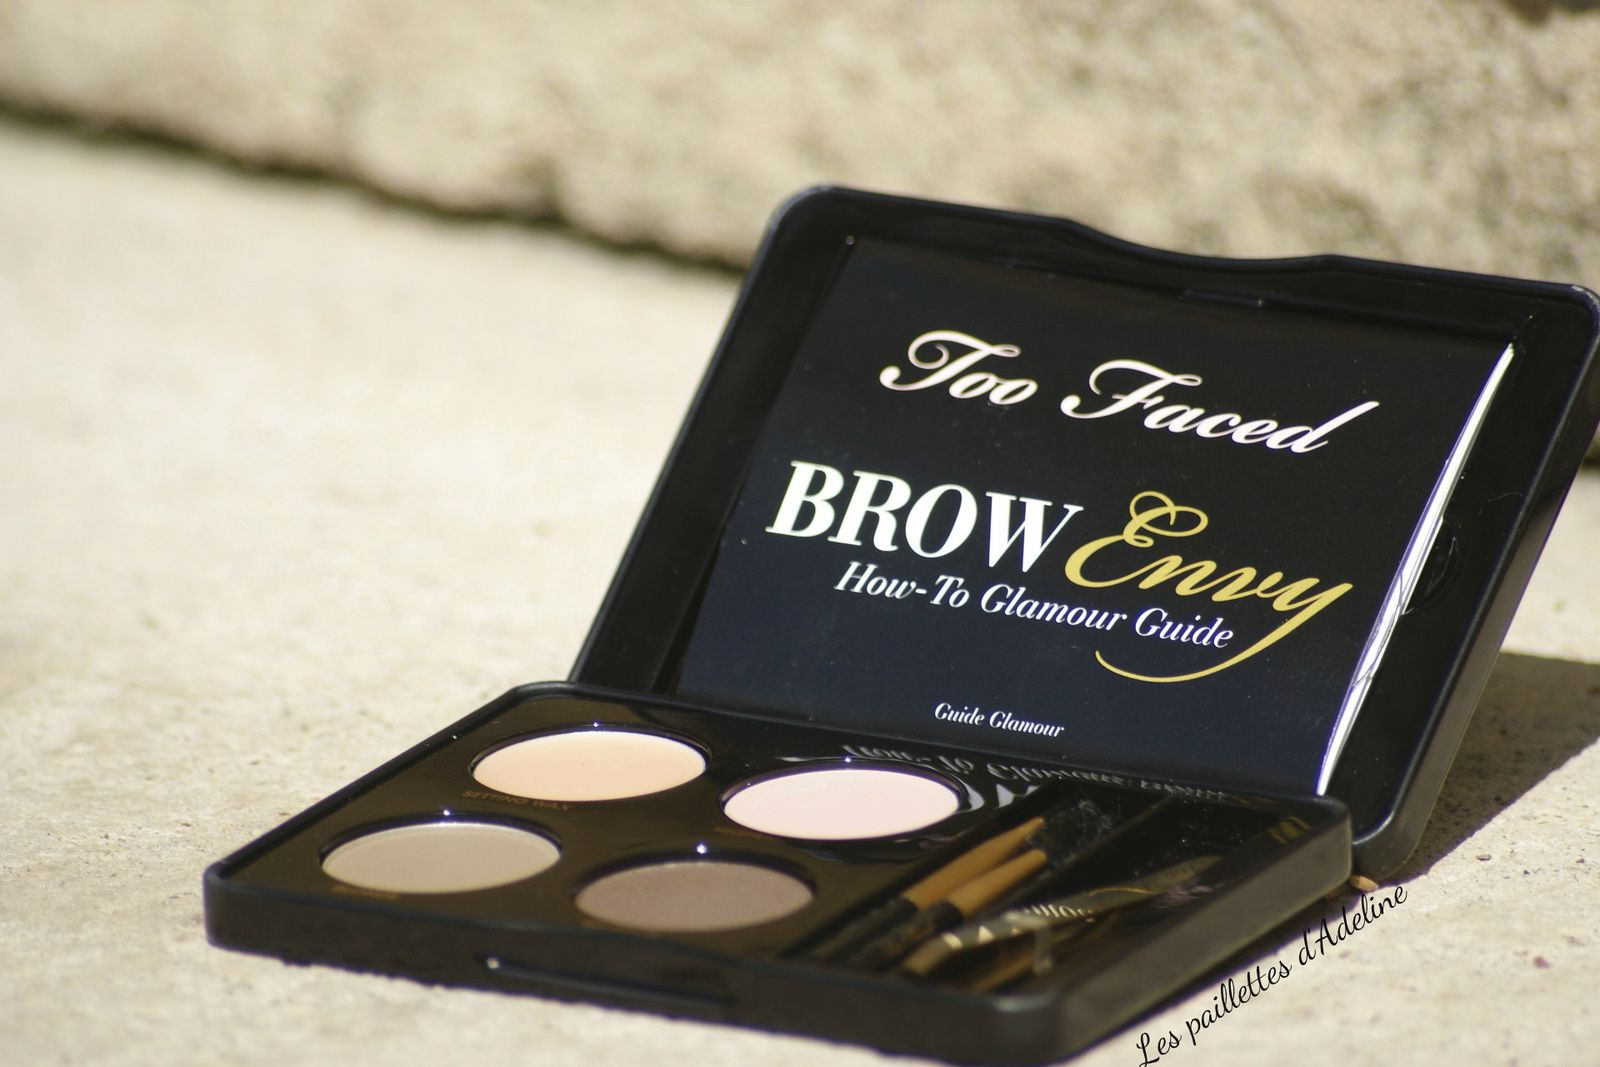 Le secret pour des sourcils parfaits avec Brow Envy de Too Faced